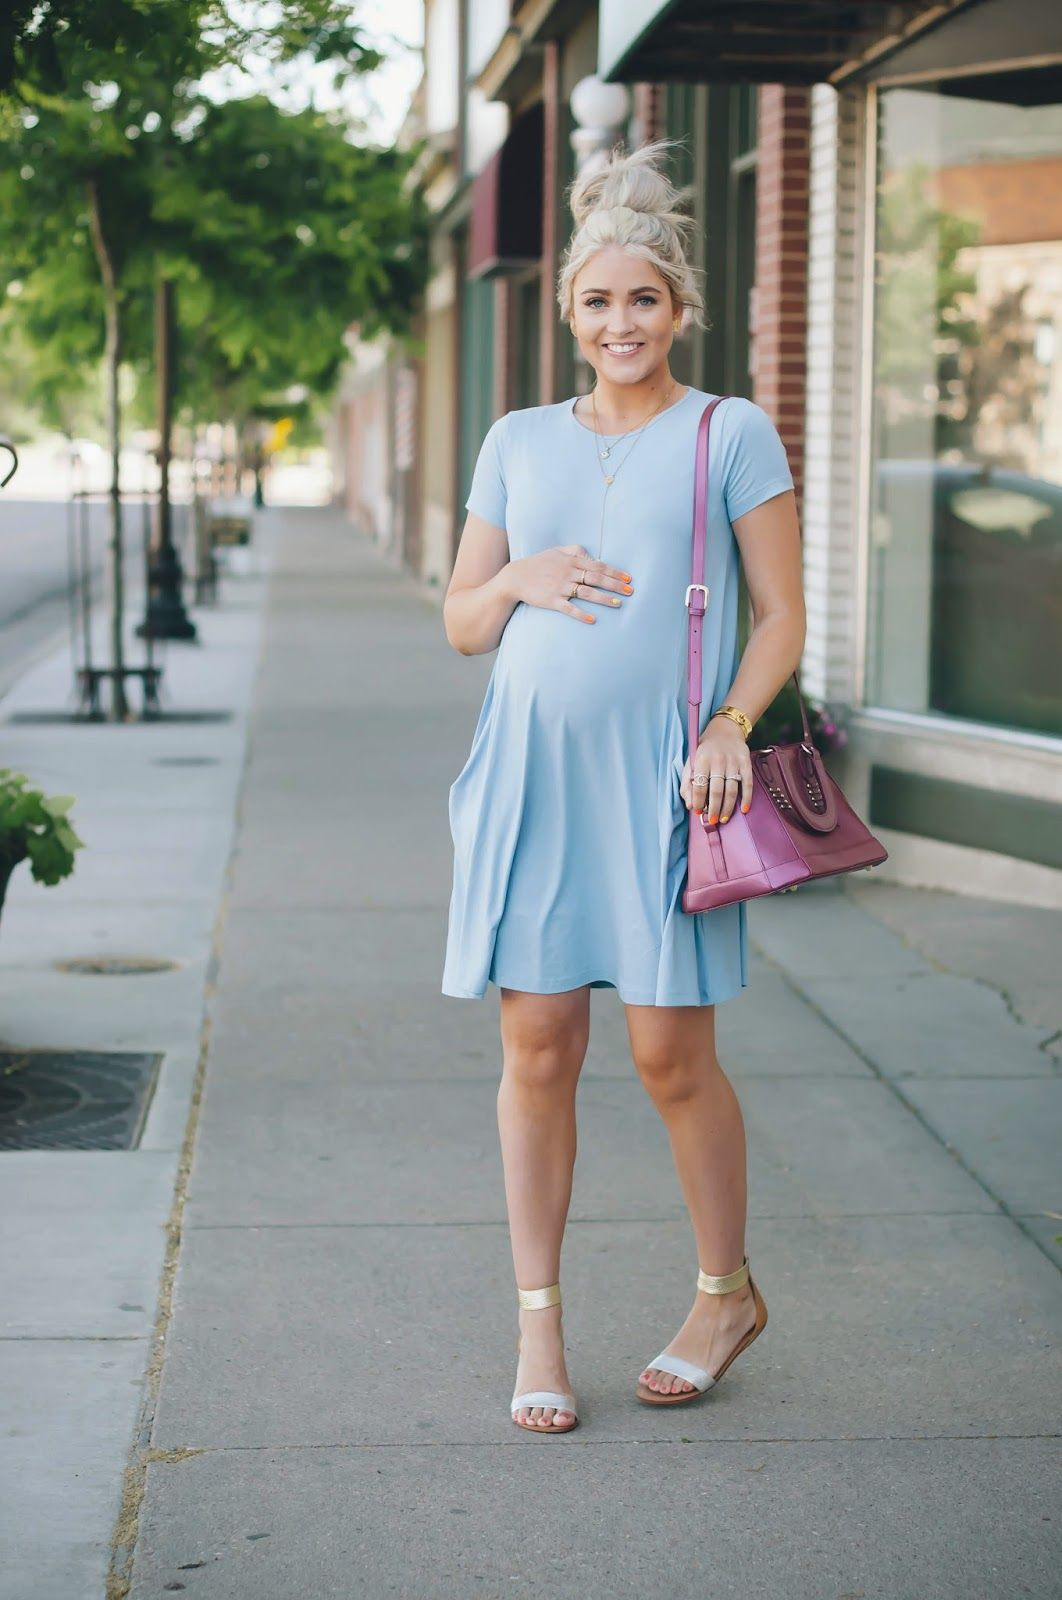 Sweet Blue Dress For Spring Maternitystyle Pregnancy Momstyle Mama Style Fashion Look Visit Www Circu